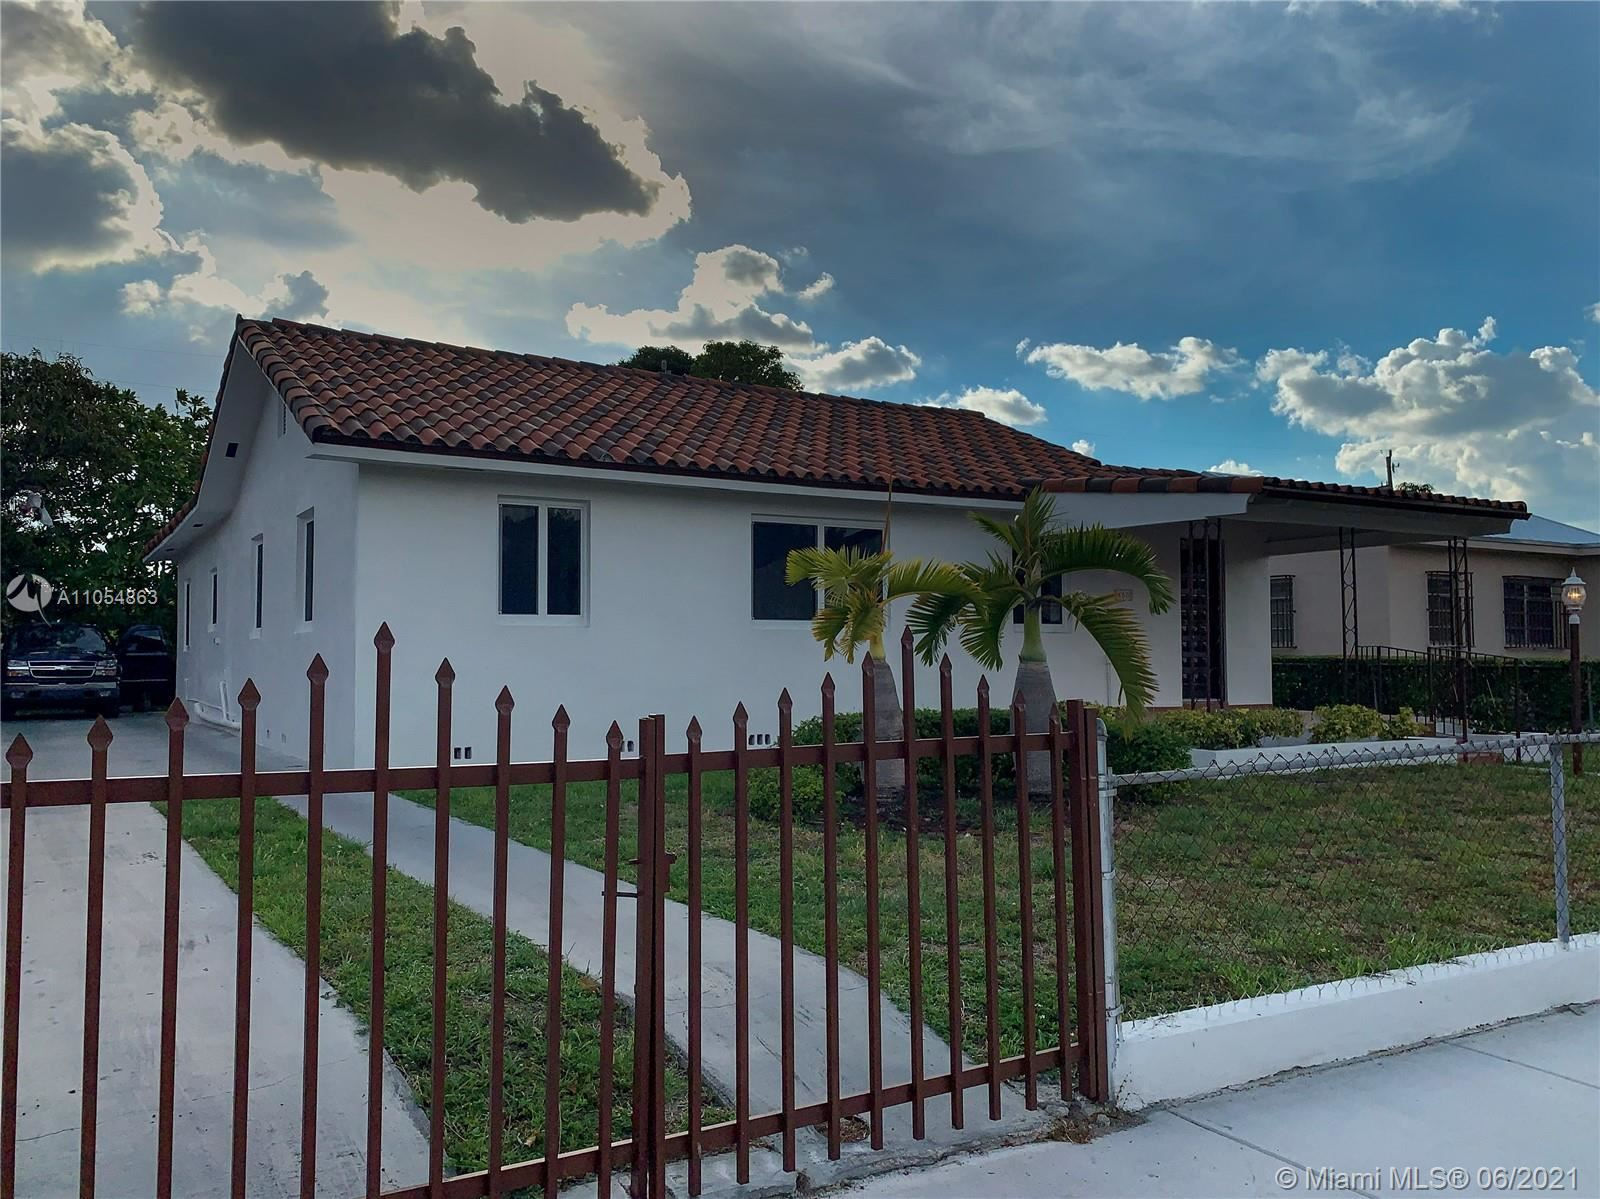 460 NW 32nd Ct, Miami, FL 33125 - #: A11054863